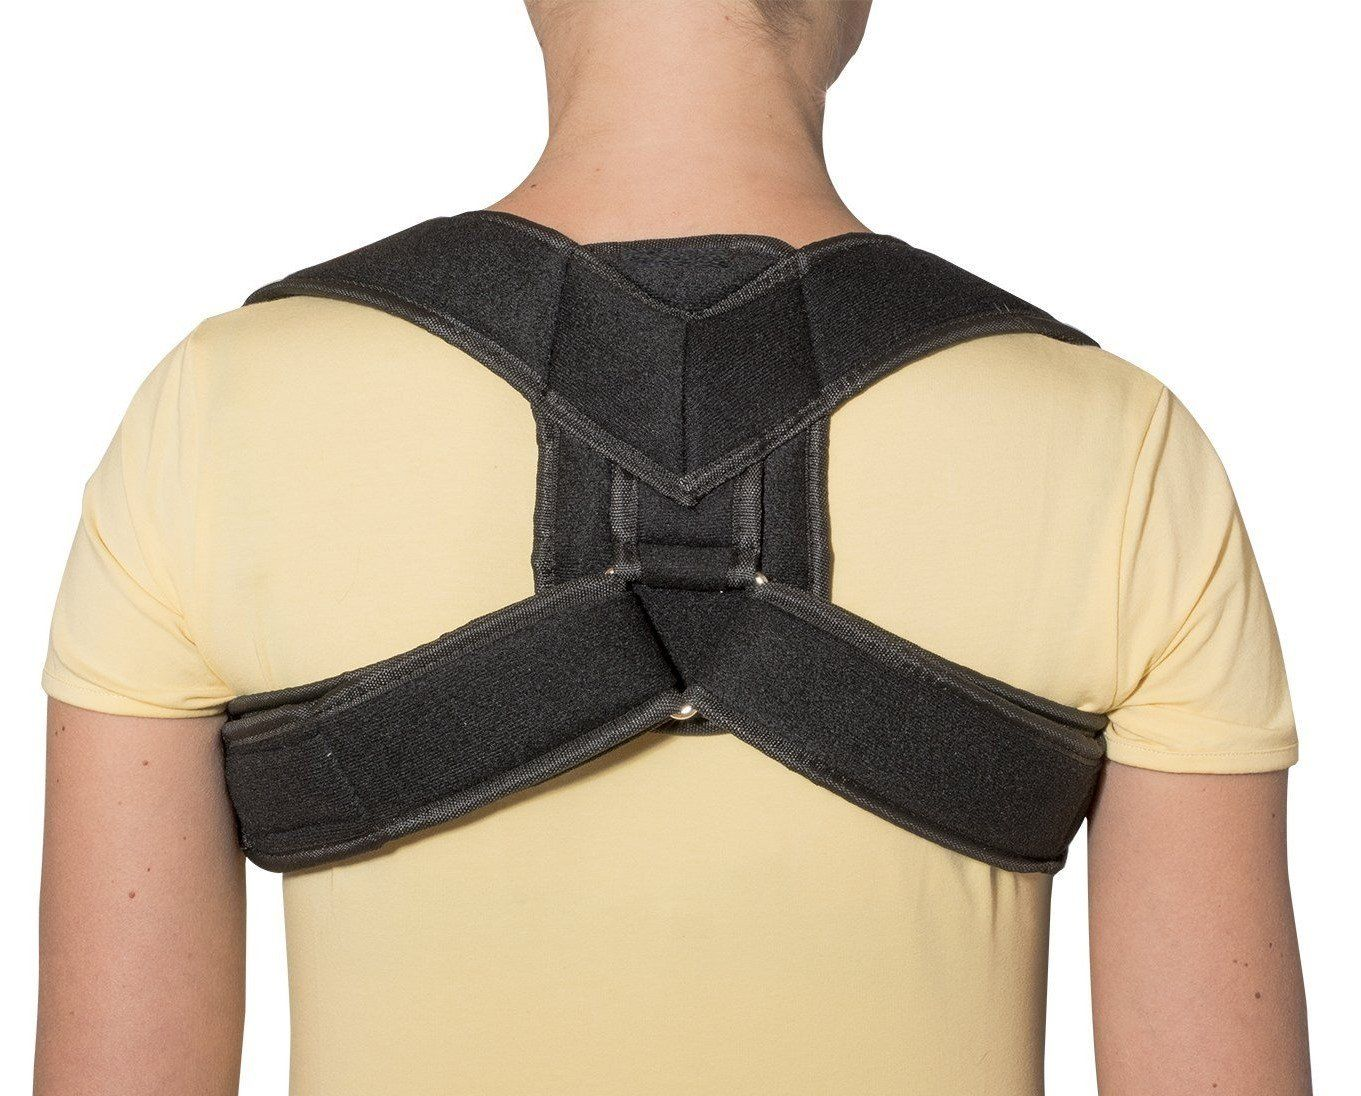 Posture Corrector Back Shoulder Brace For Standing Up Straight  Stabilitypro-4089